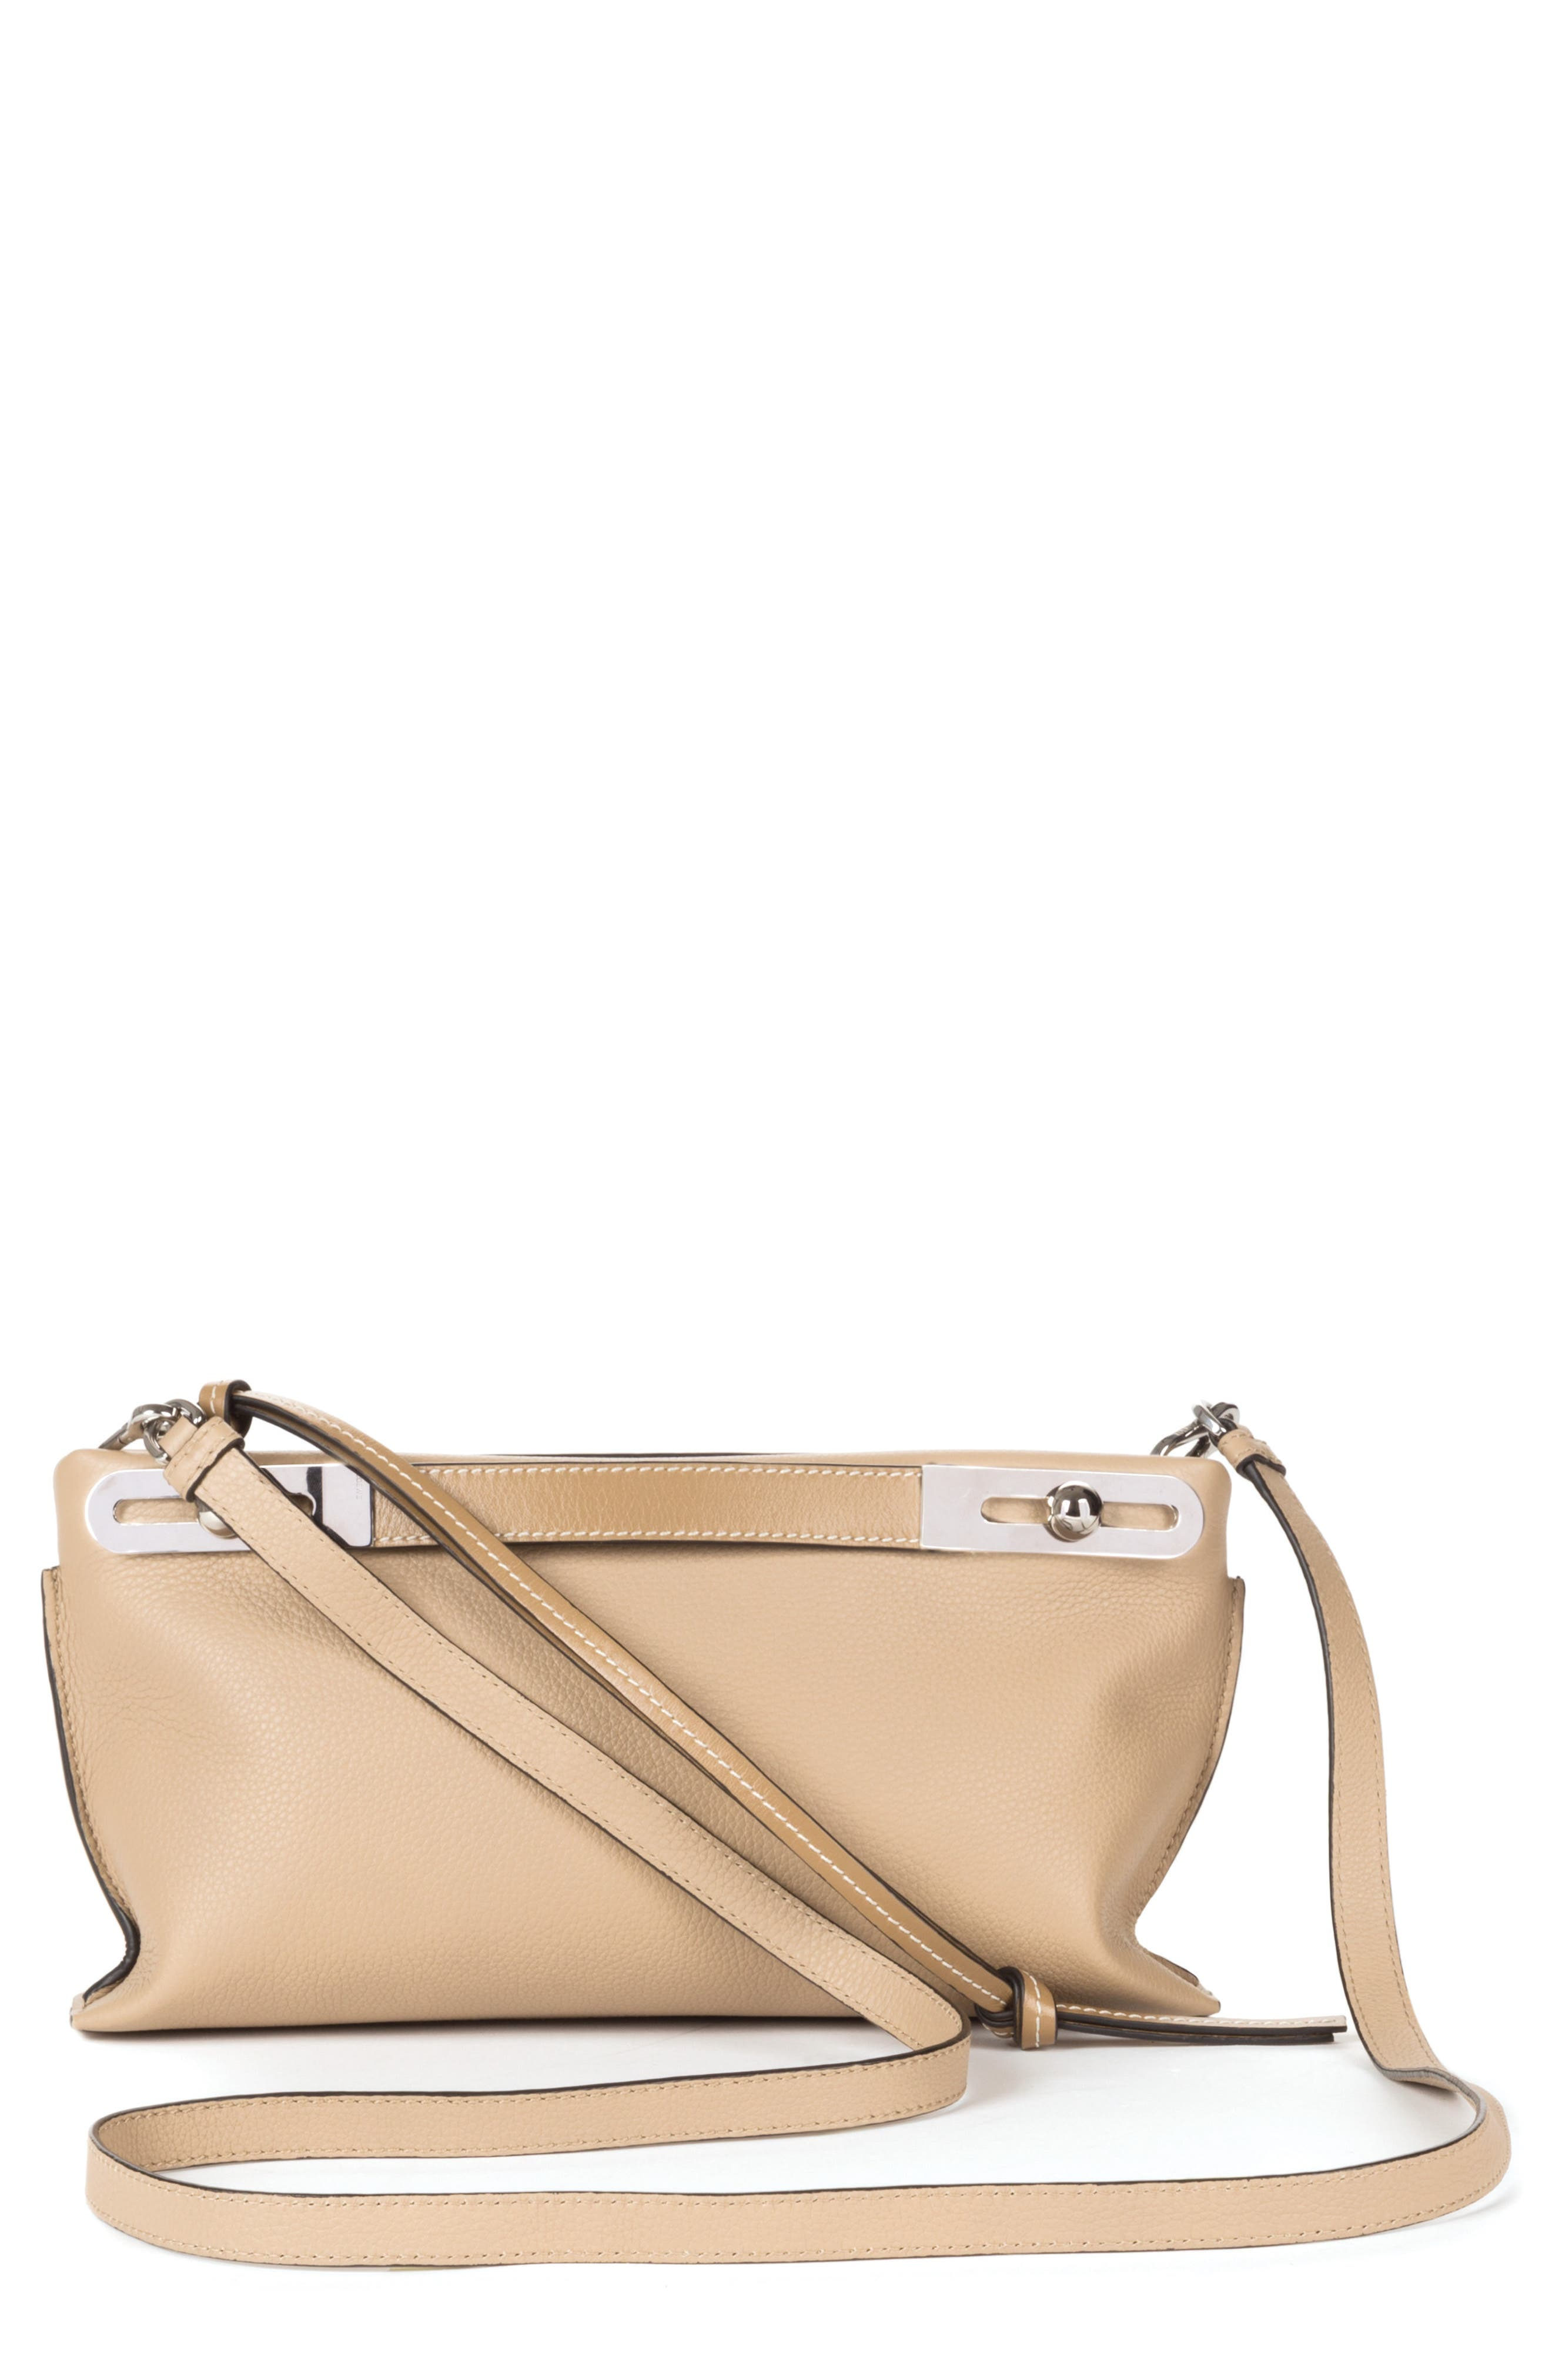 Small Missy Leather Crossbody Bag,                             Main thumbnail 1, color,                             269